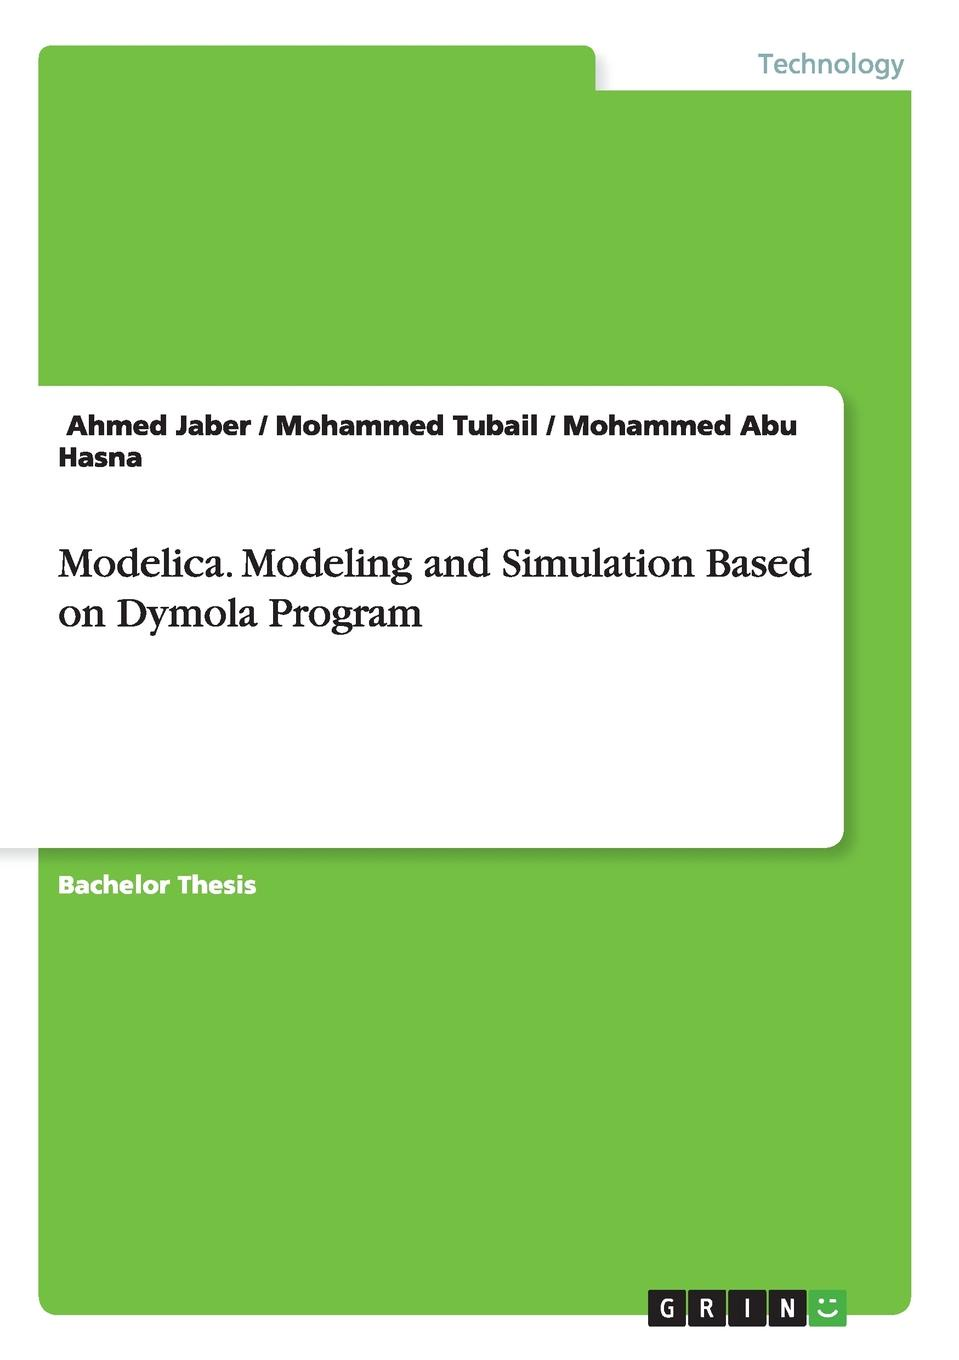 ِAhmed Jaber, Mohammed Tubail, Mohammed Abu Hasna Modelica. Modeling and Simulation Based on Dymola Program object oriented modeling of virtual labs for control education